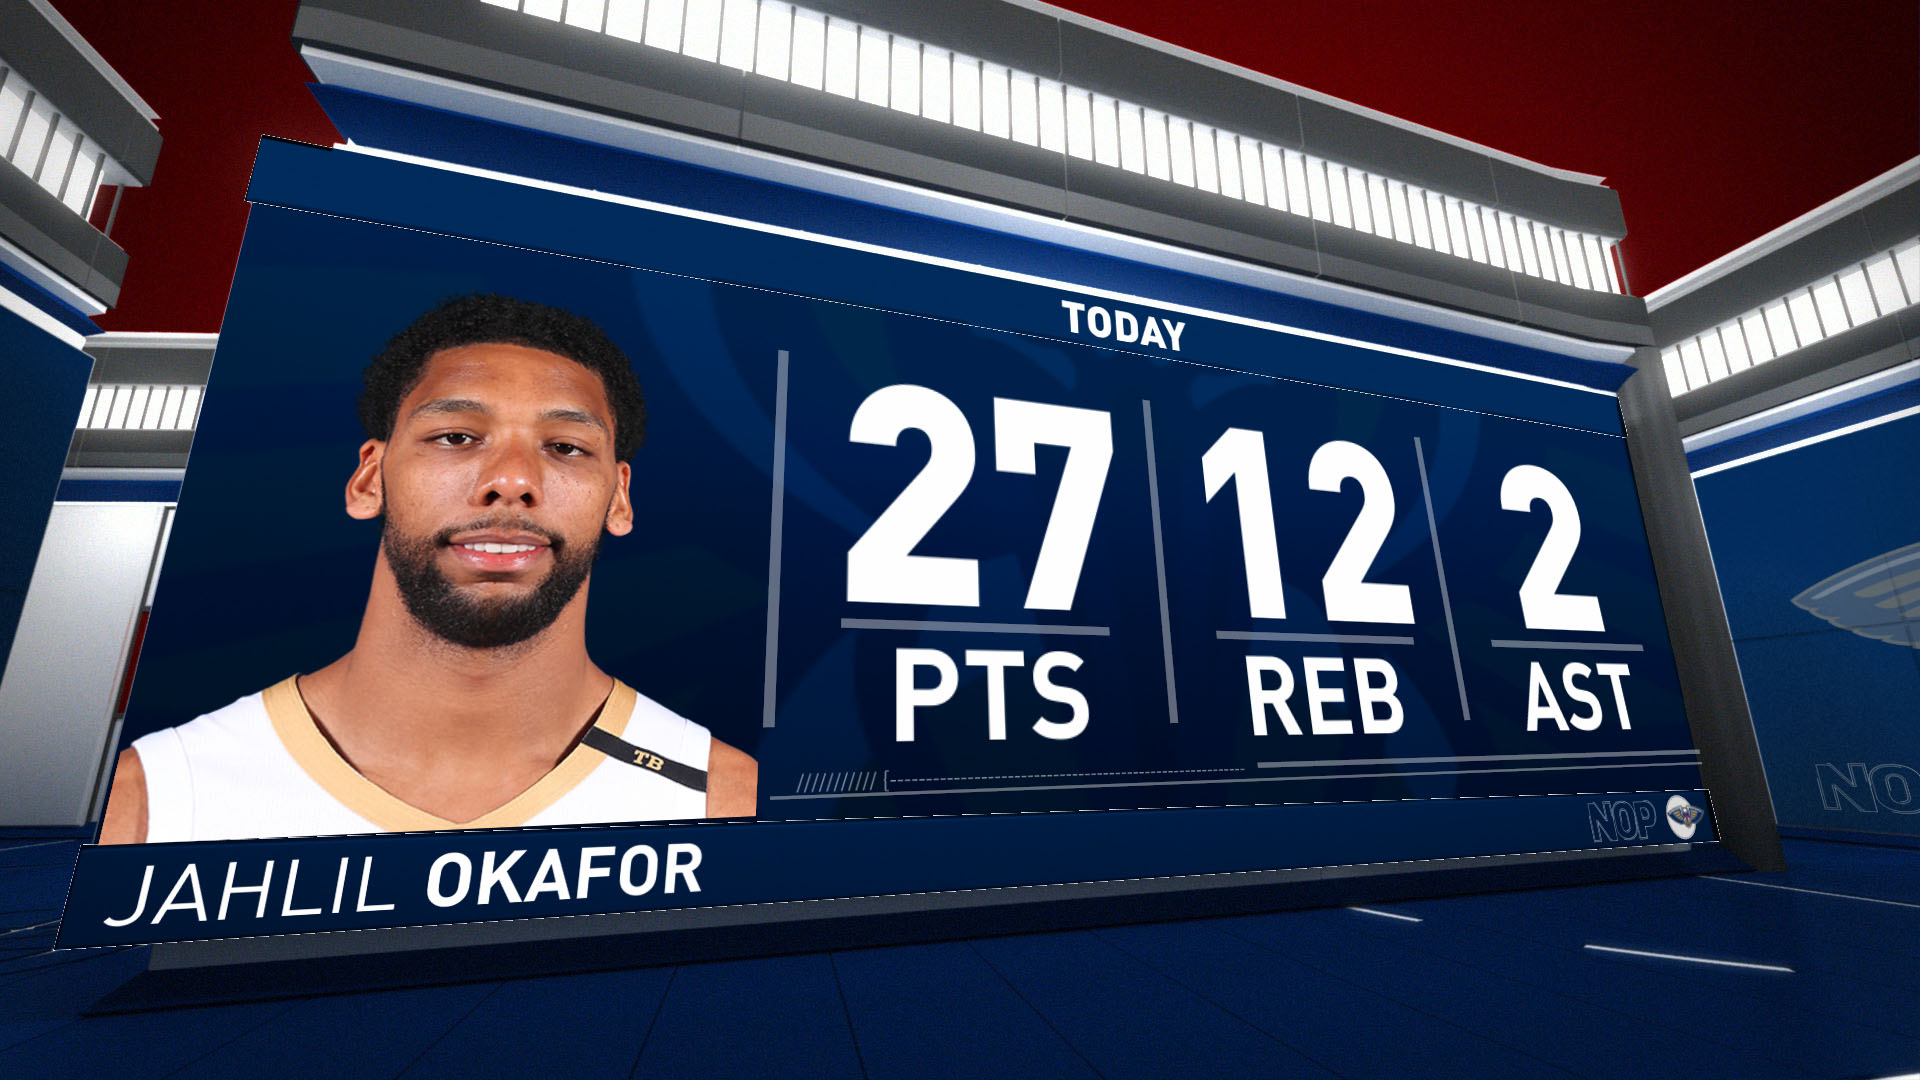 Highlights: Jahlil Okafor leads Pelicans with 27-12 vs. Rockets